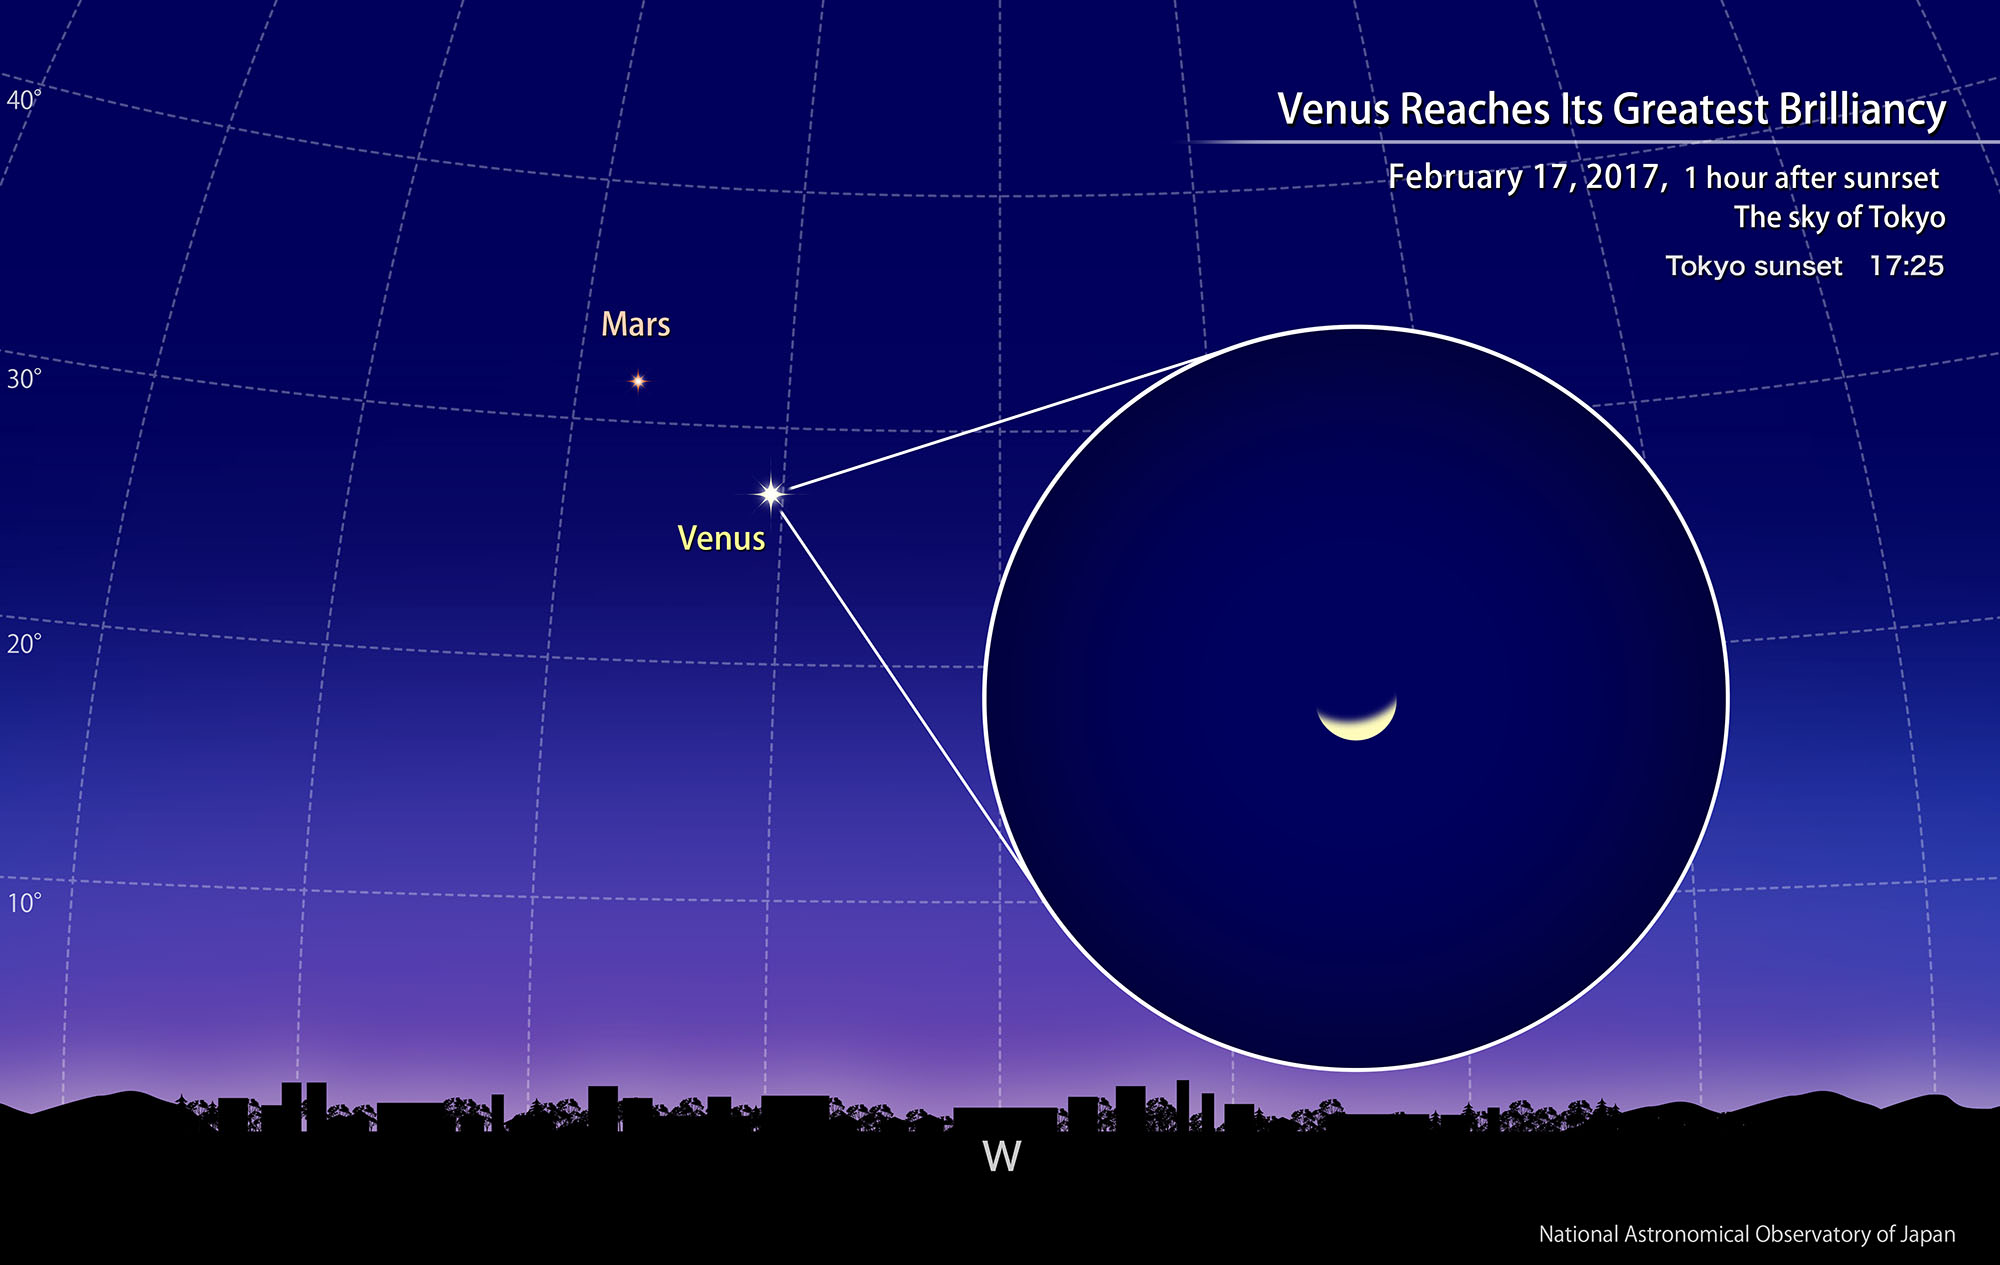 Venus Reaches Its Greatest Brilliancy February 2017